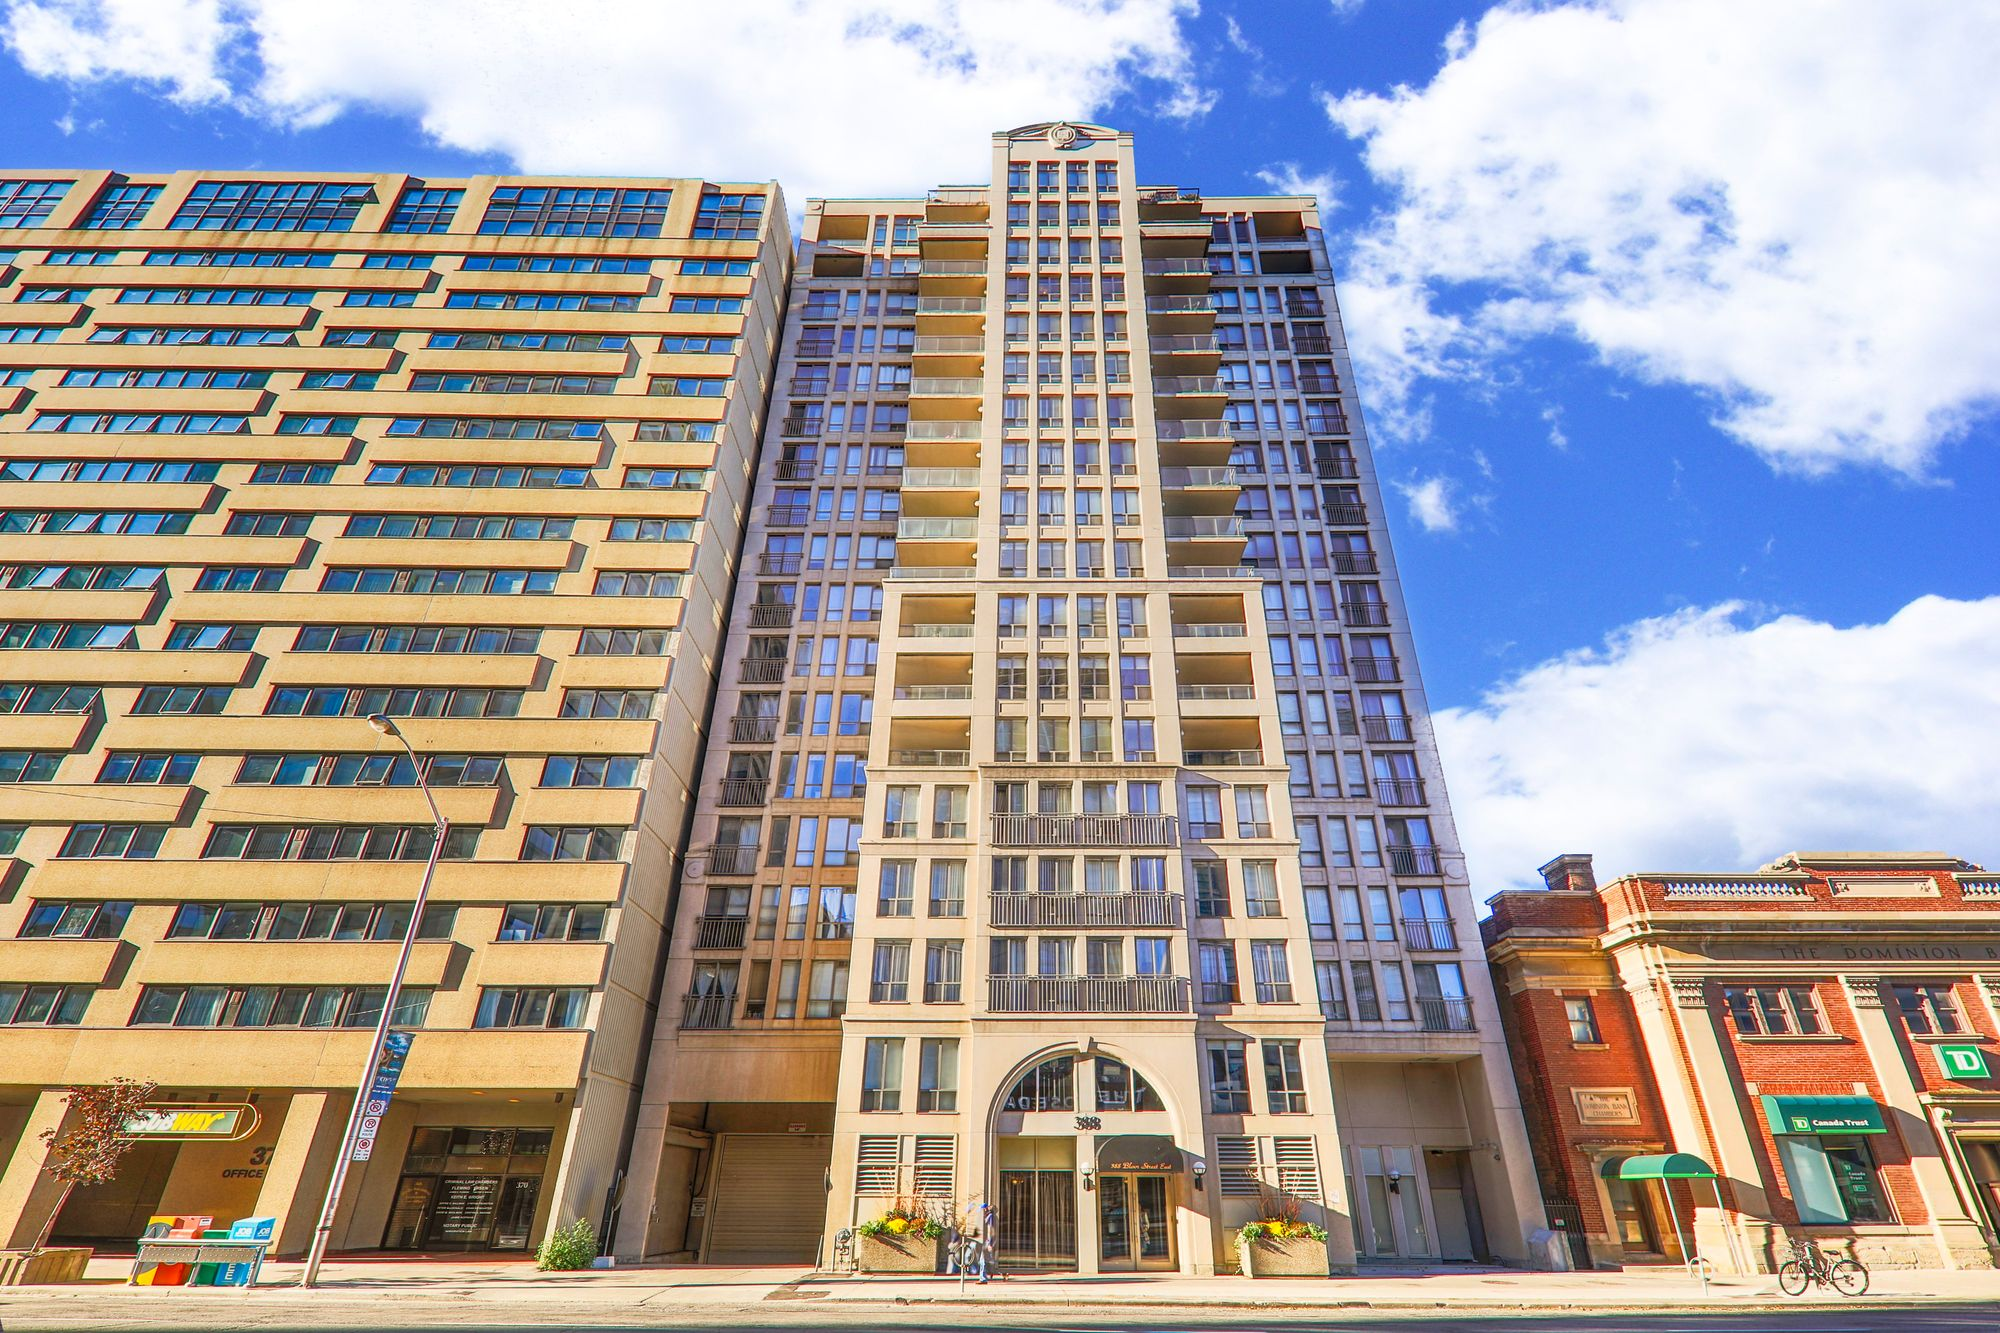 388 Bloor St E. This condo at Rosedale Ravine Residences is located in  Downtown, Toronto - image #2 of 4 by Strata.ca